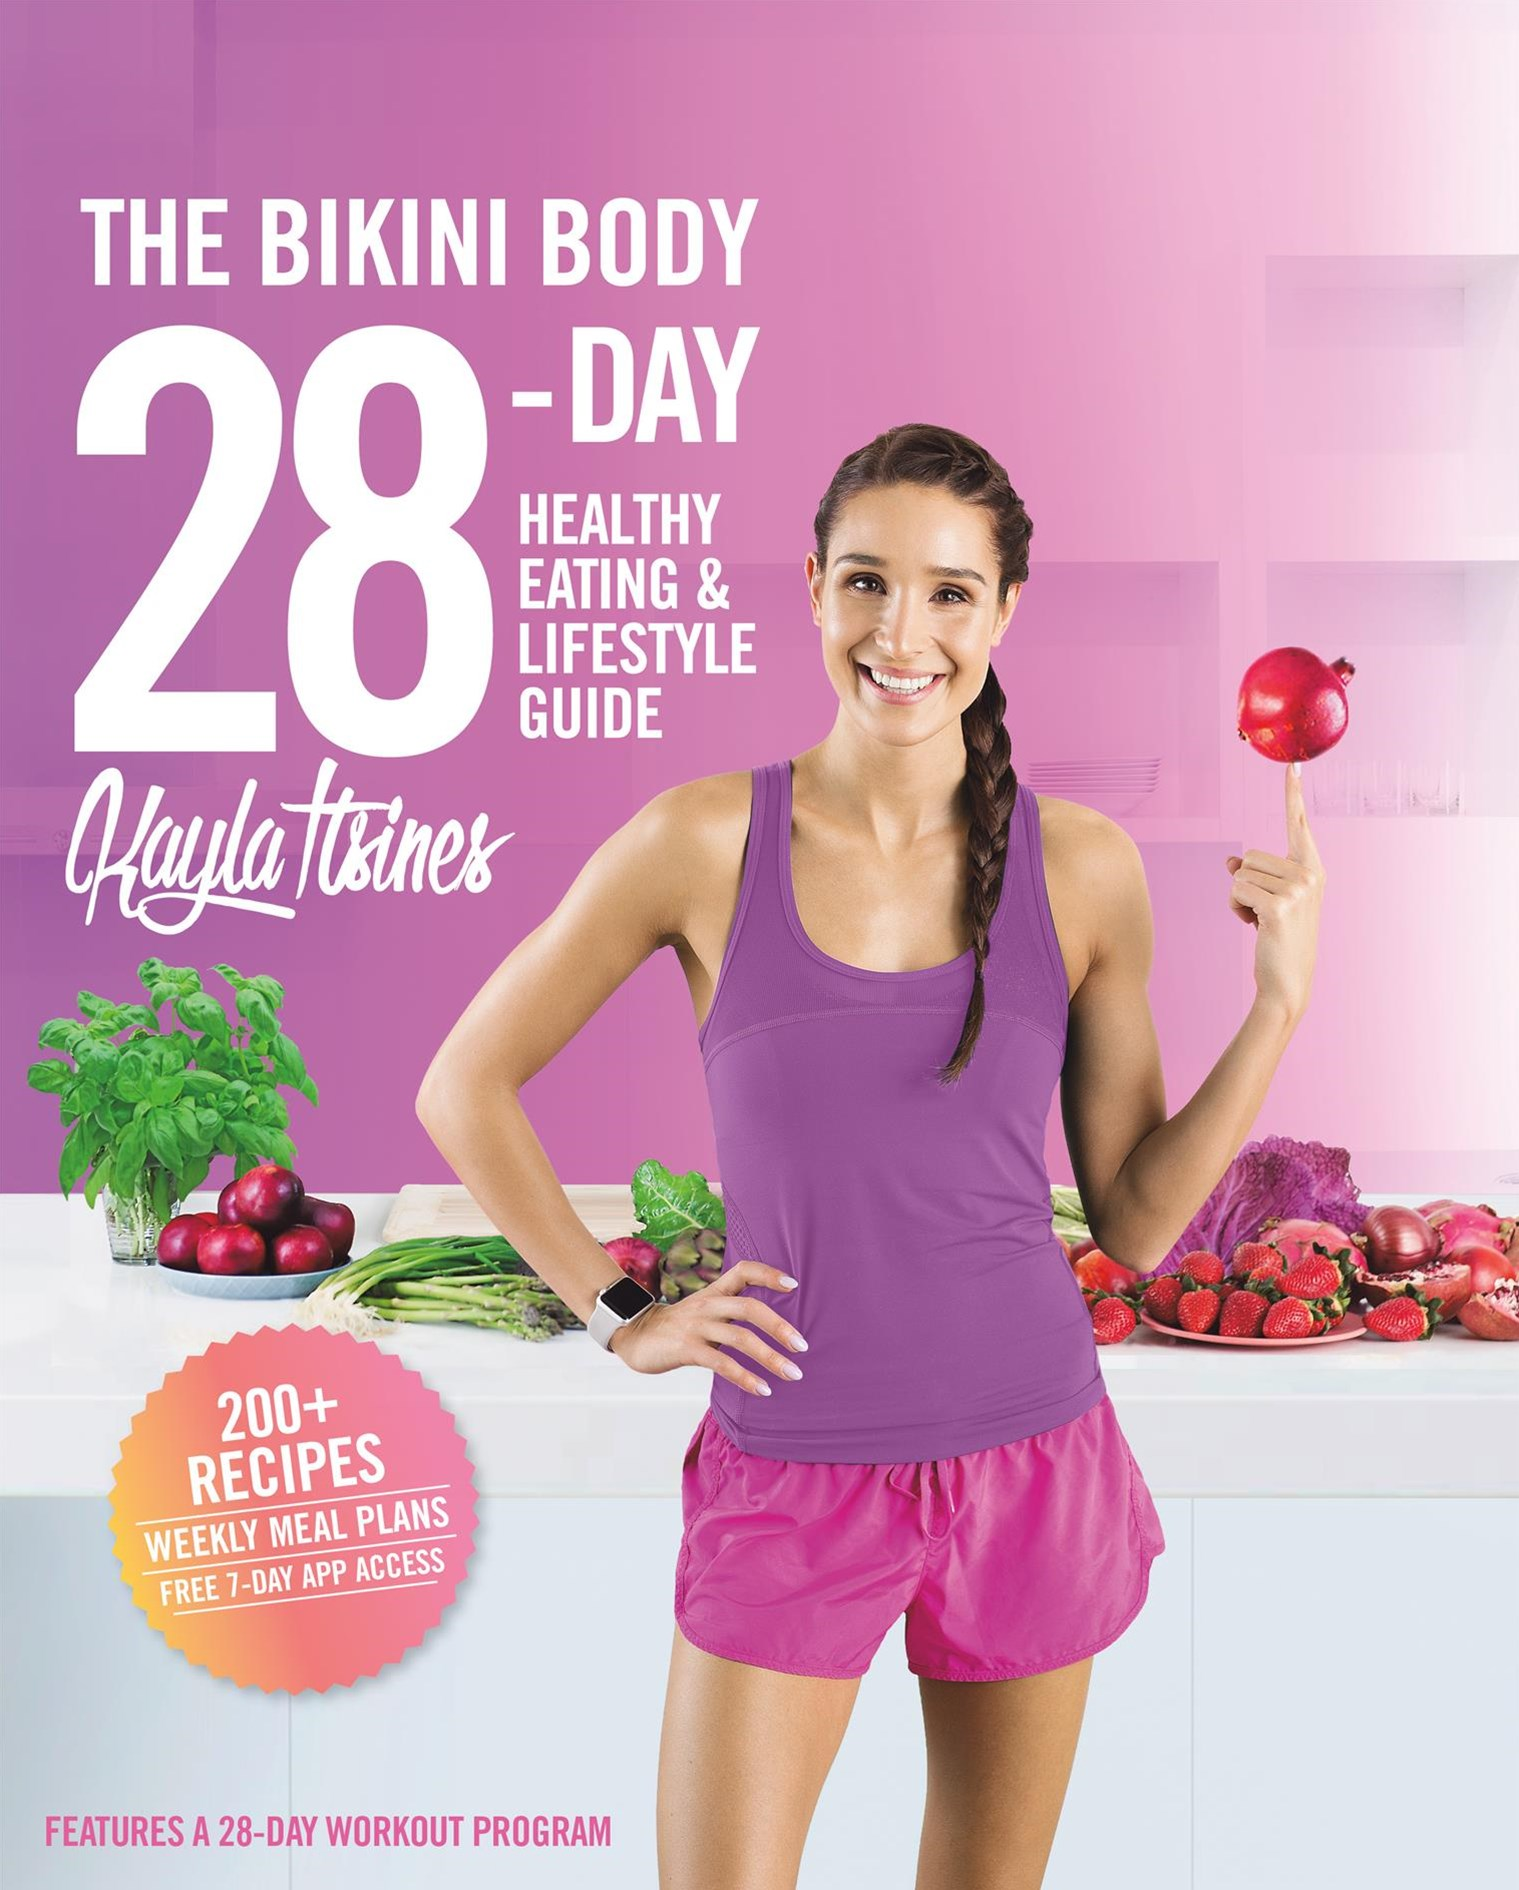 The Bikini Body 28-Day Healthy Eating and Lifestyle Guide